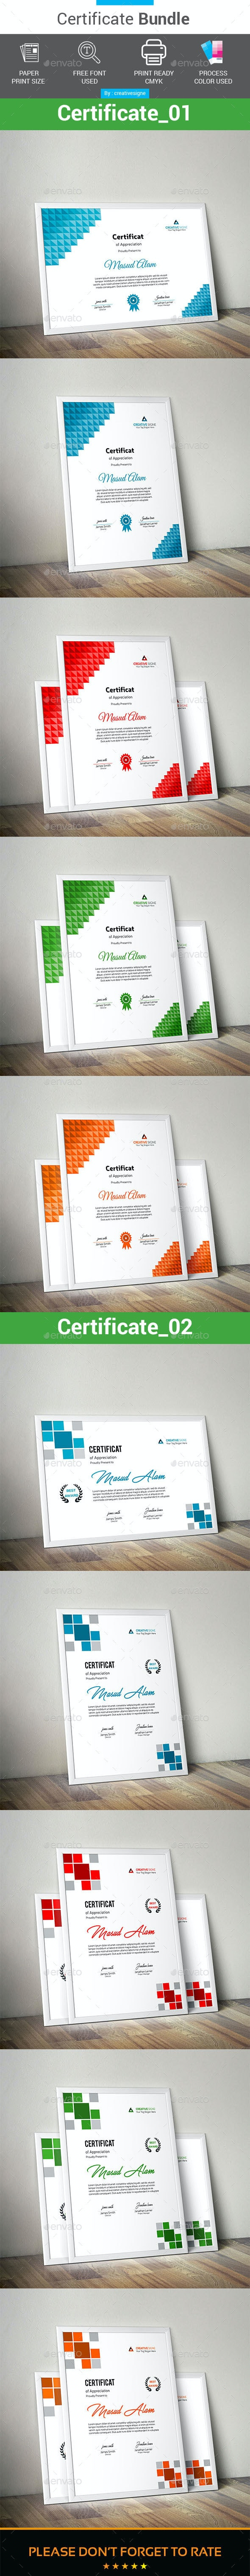 Certificate Bundle 2 in 1 - Stationery Print Templates